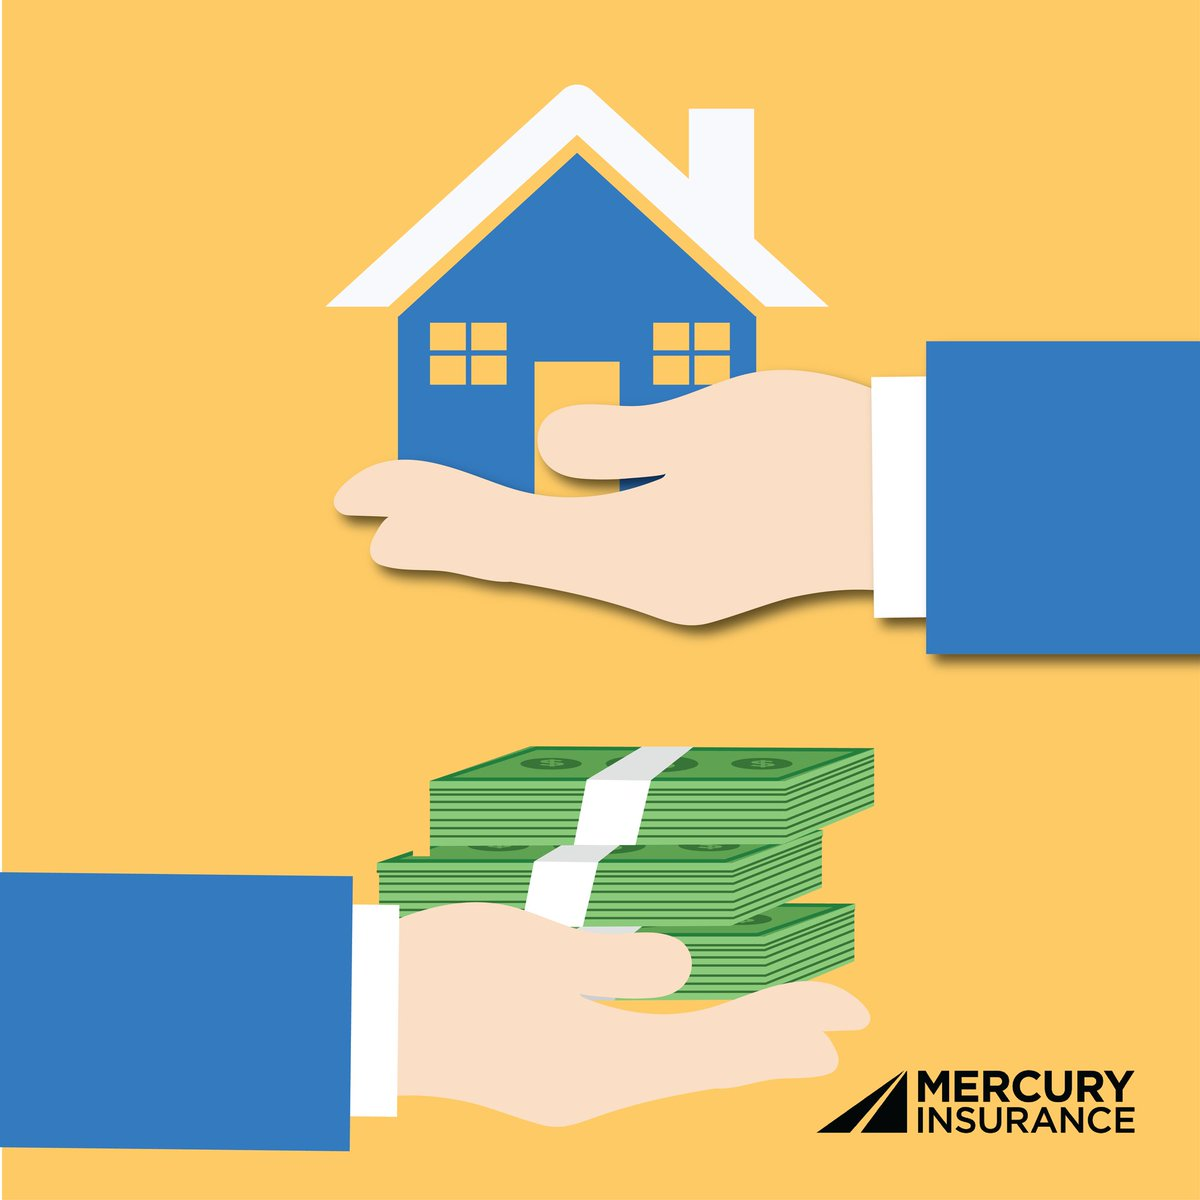 Mercury Home Insurance >> Mercury Insurance On Twitter I M Anxious About Buying My First